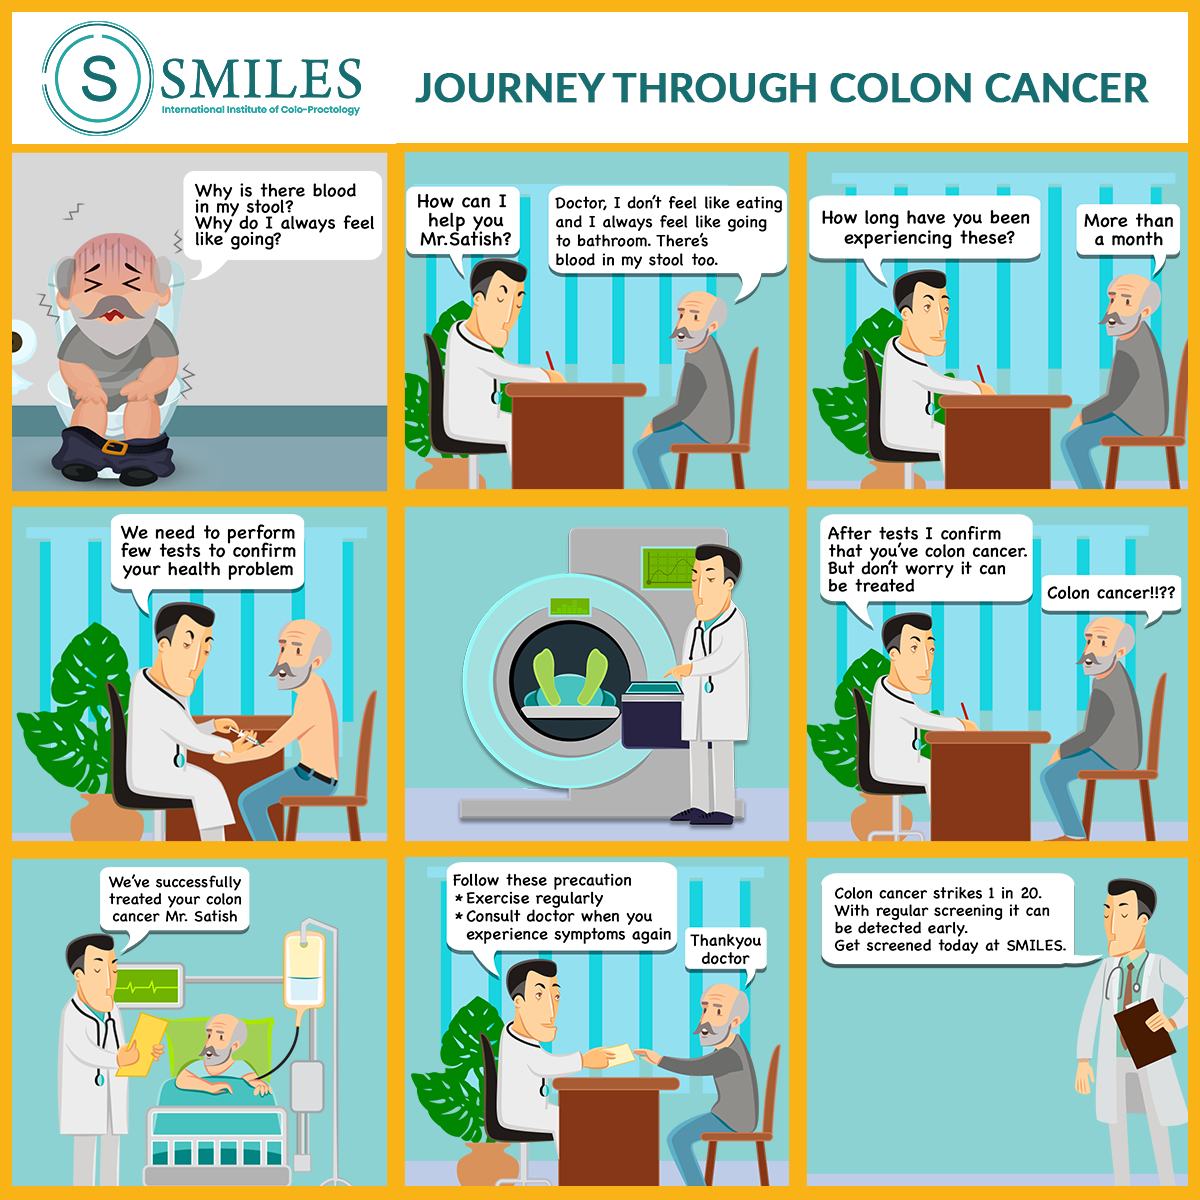 10. Summary of colon cancer journey